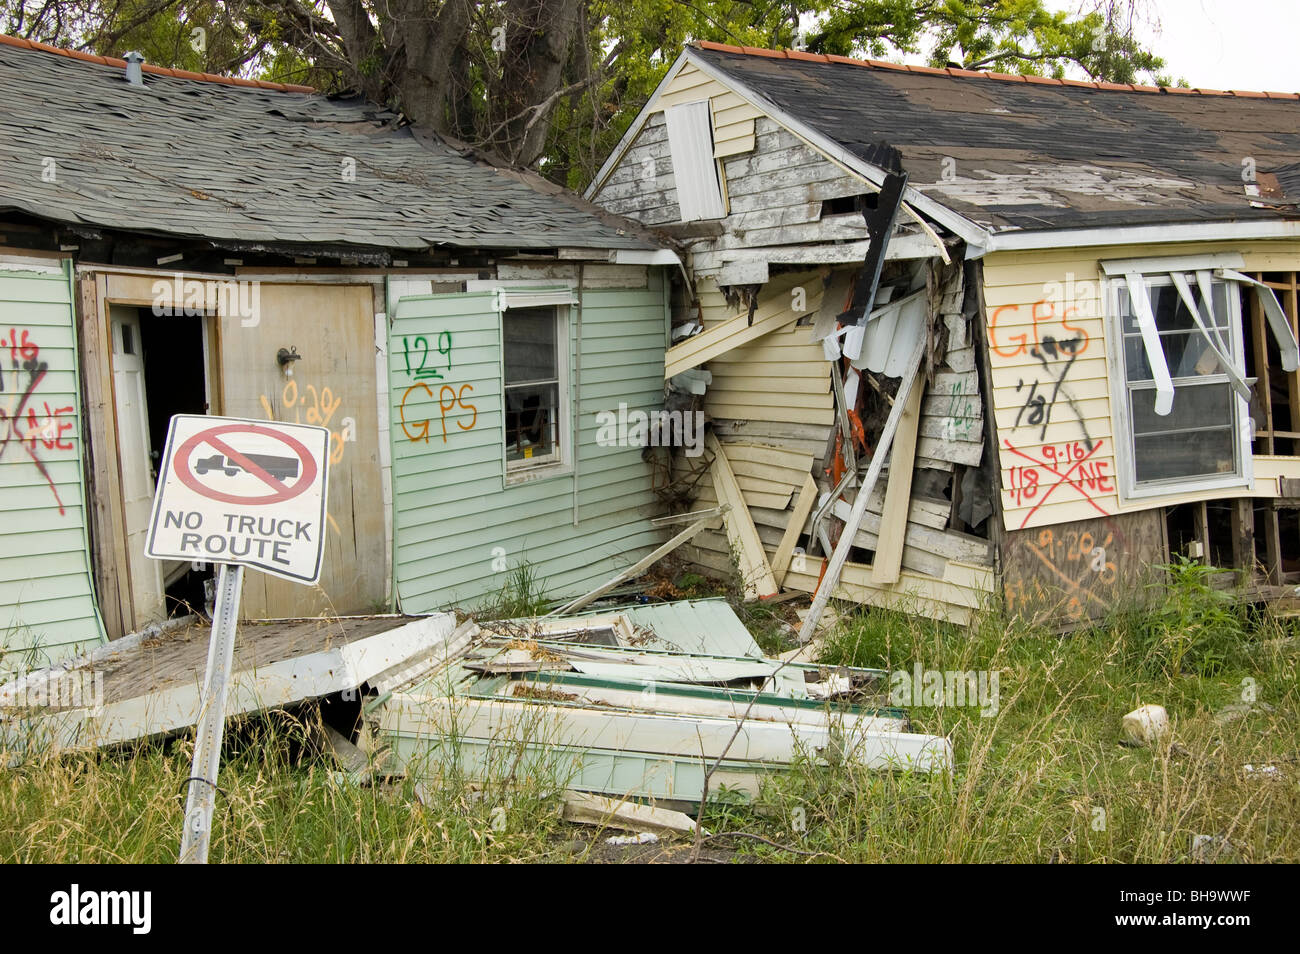 mobile homes in louisiana with Stock Photo Homes Which Floated Off Their Foundations In The Flooding After Hurricane 27877403 on 4647099568 additionally 5981487065 furthermore Stock Photo Homes Which Floated Off Their Foundations In The Flooding After Hurricane 27877403 furthermore Fg6k5zv likewise 91723536.